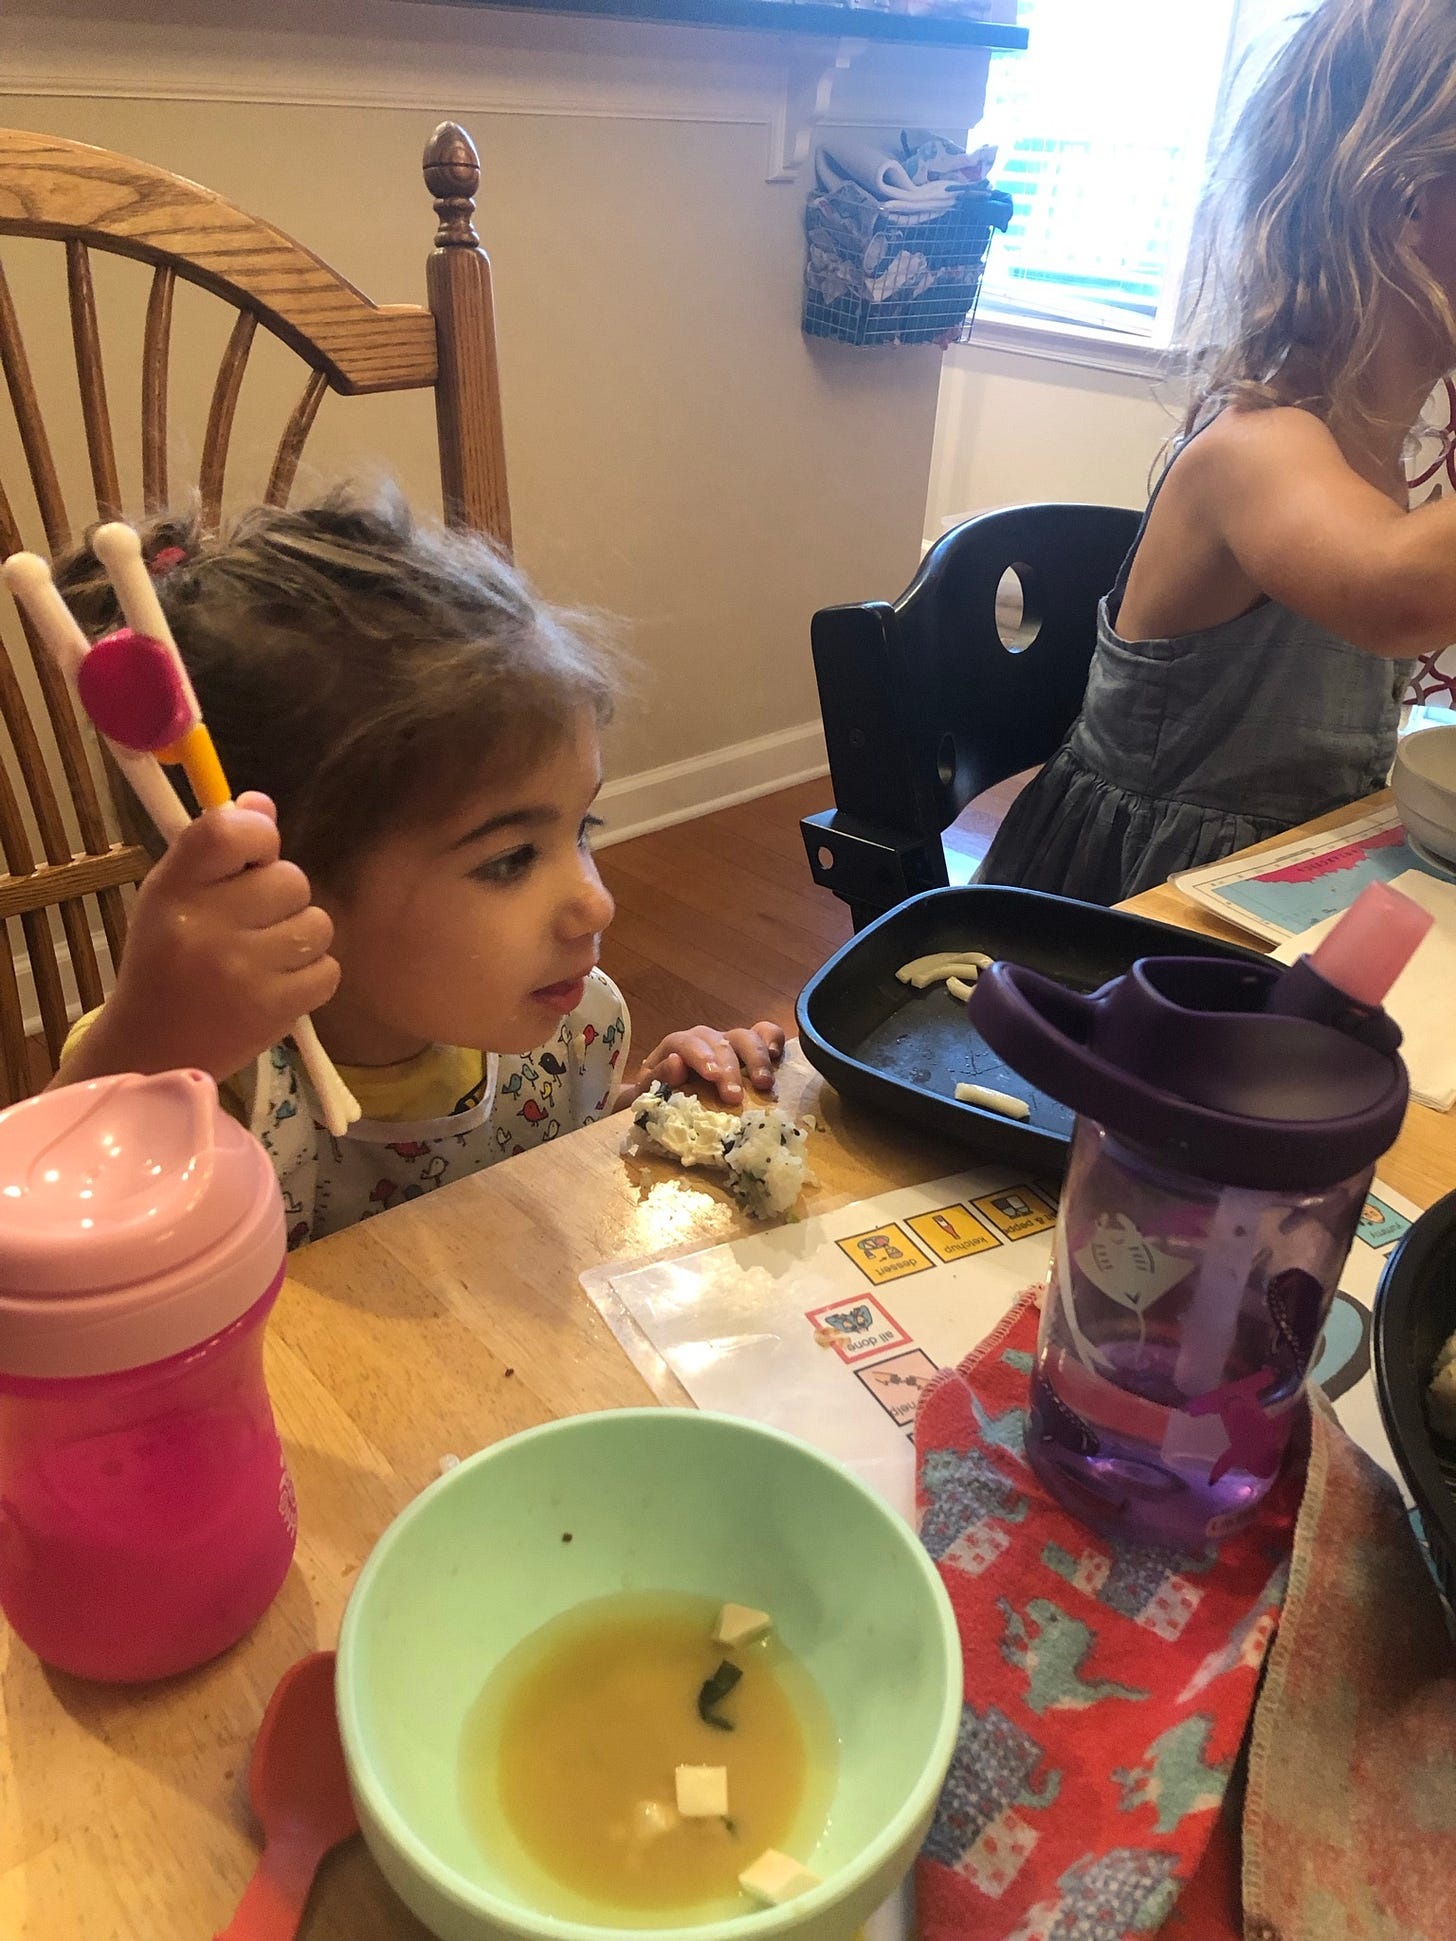 photo of a toddler holding a pair of chopsticks sitting at the dining table